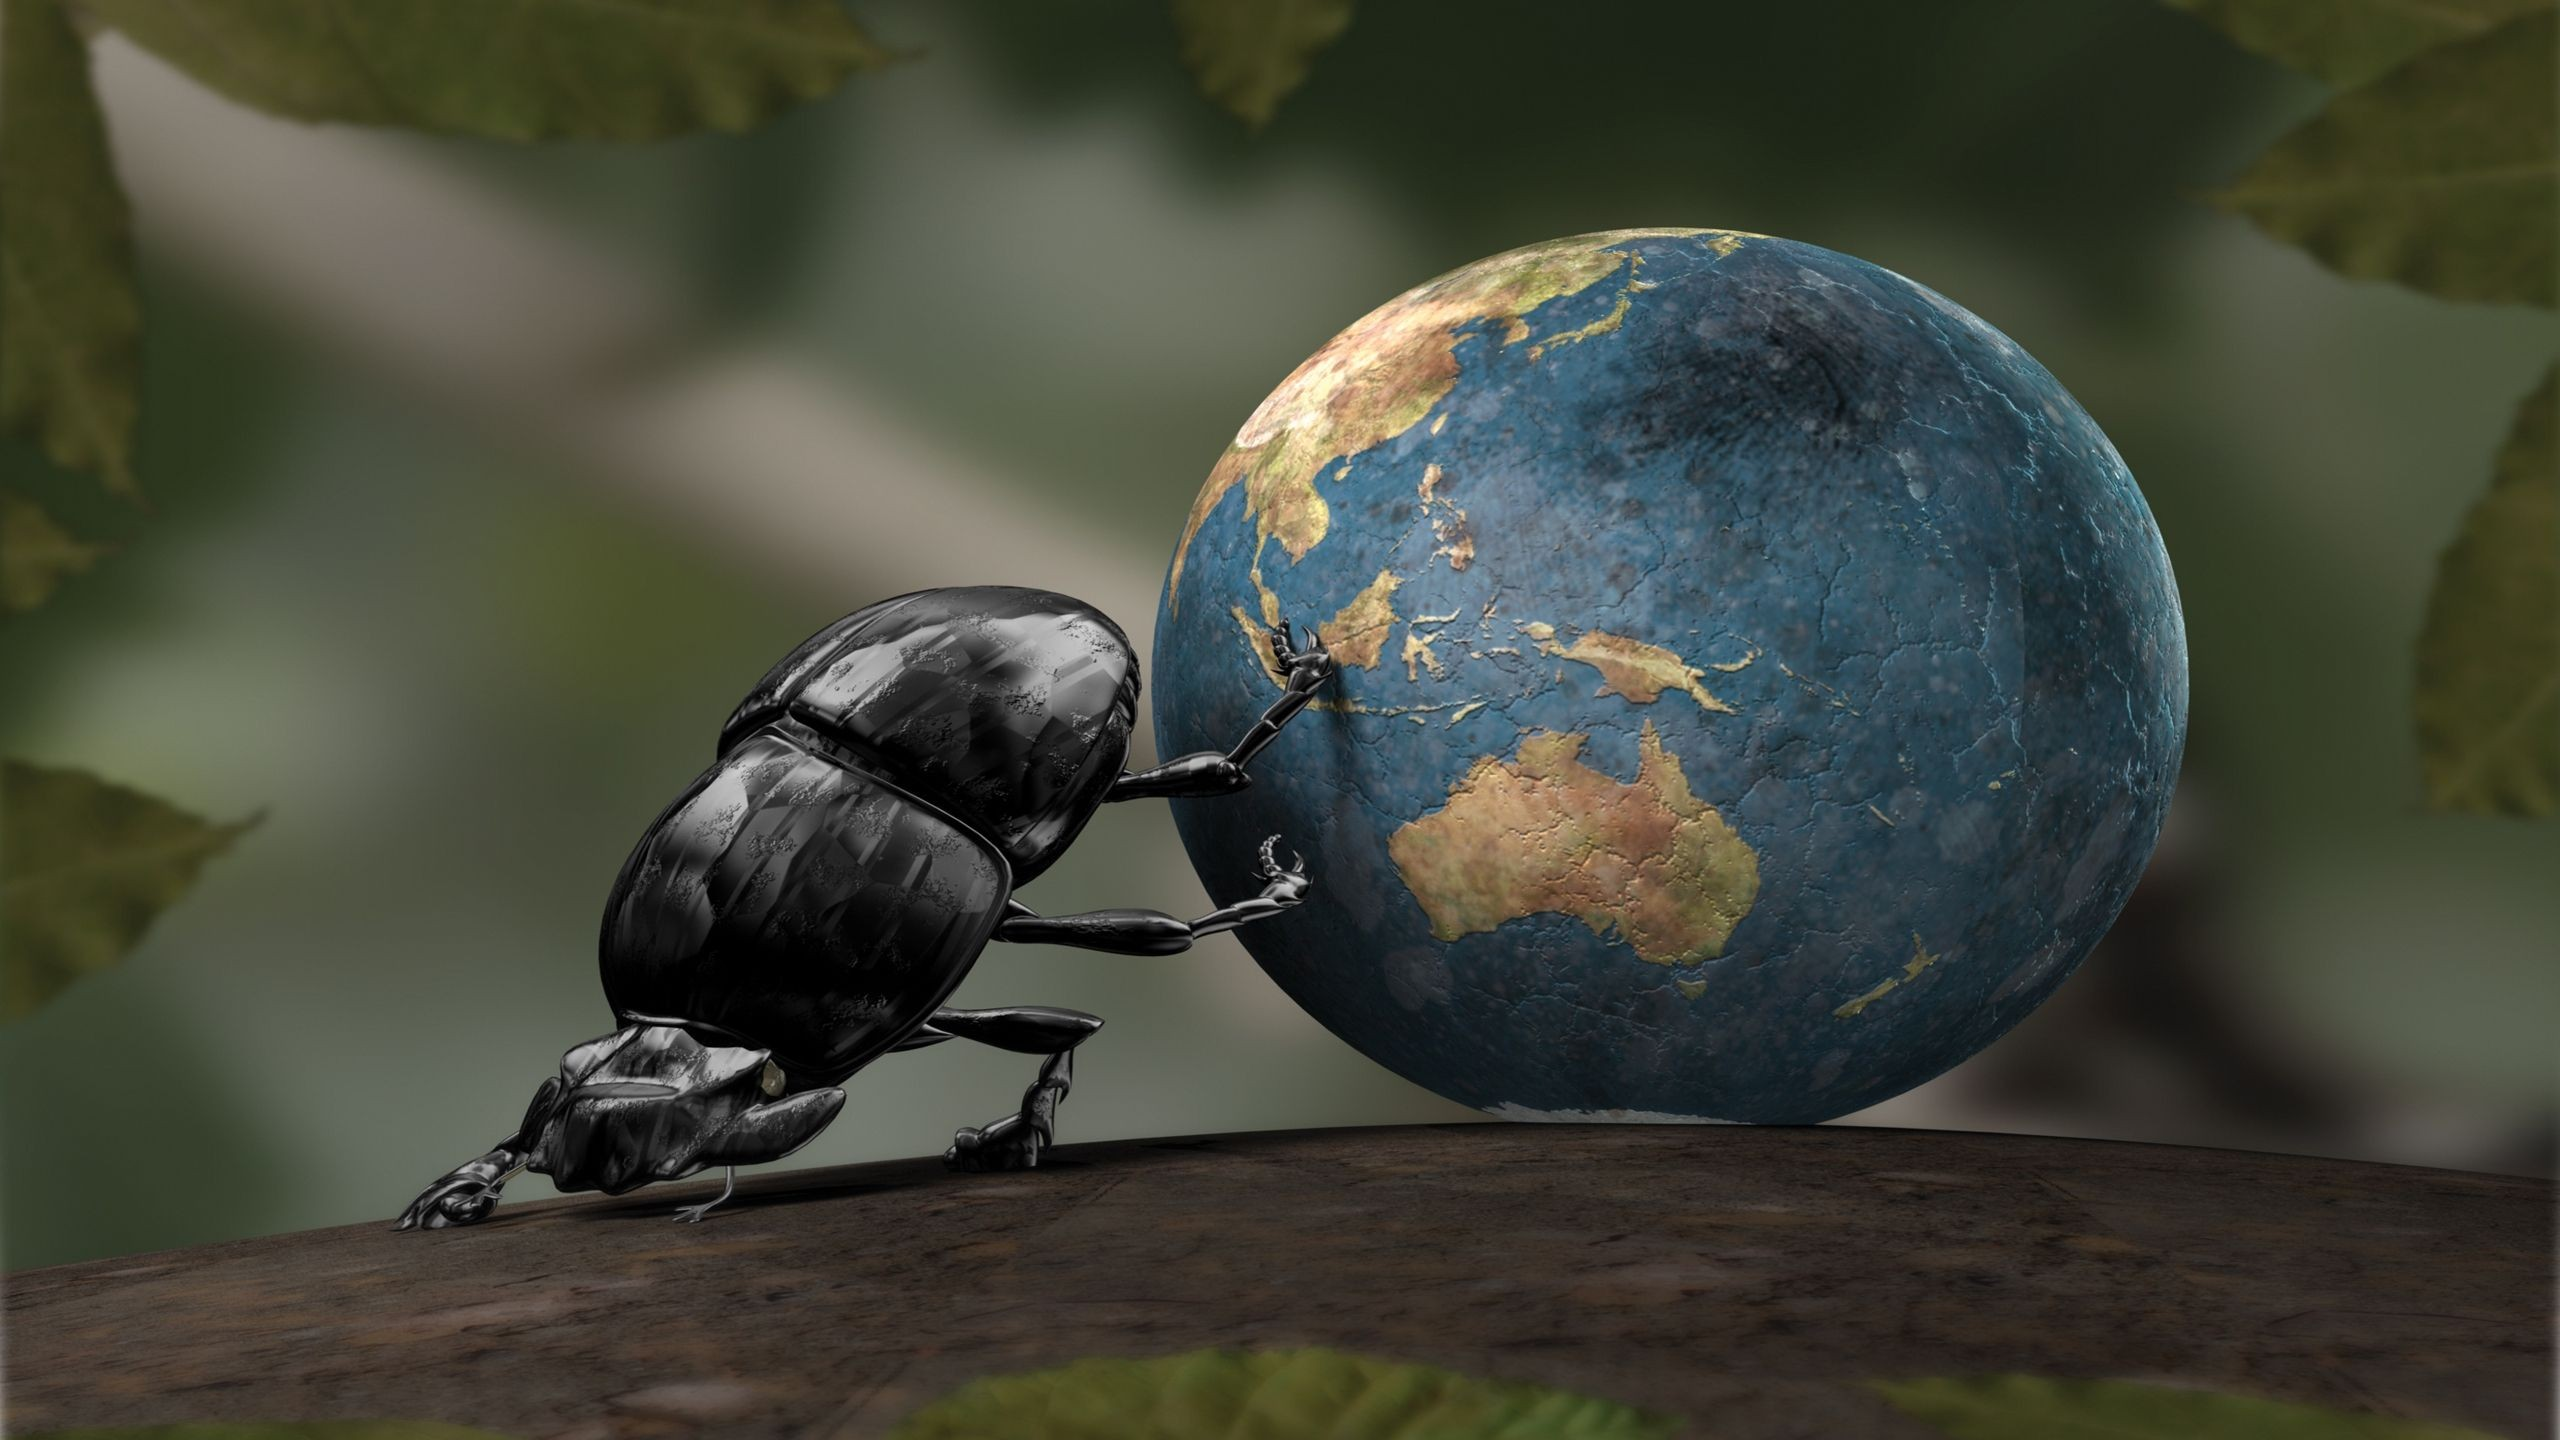 Beetle rolls the globe